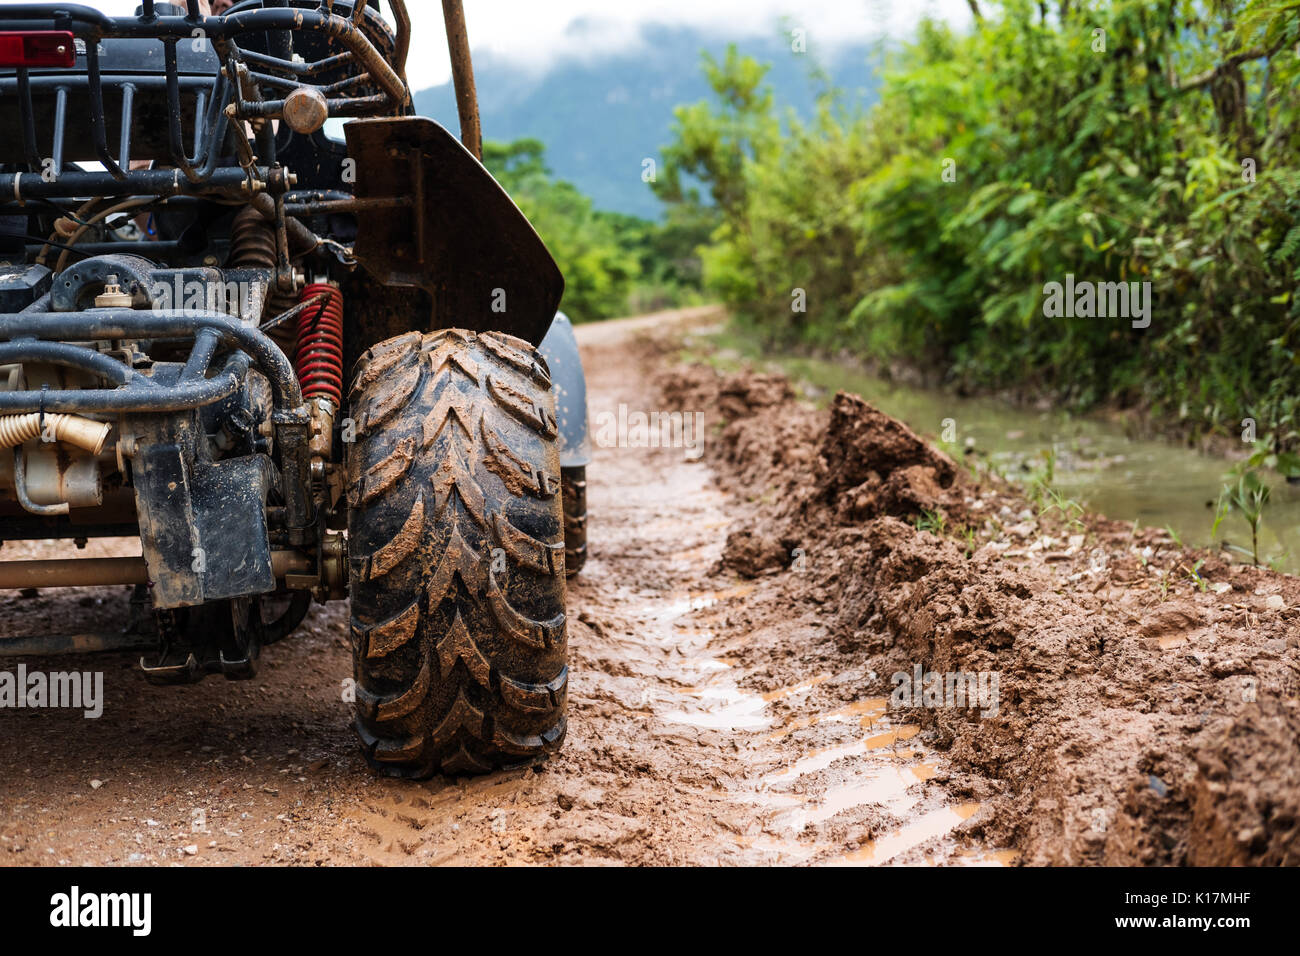 Traveling activity, Off road buggy on country road in rainy day - Stock Image